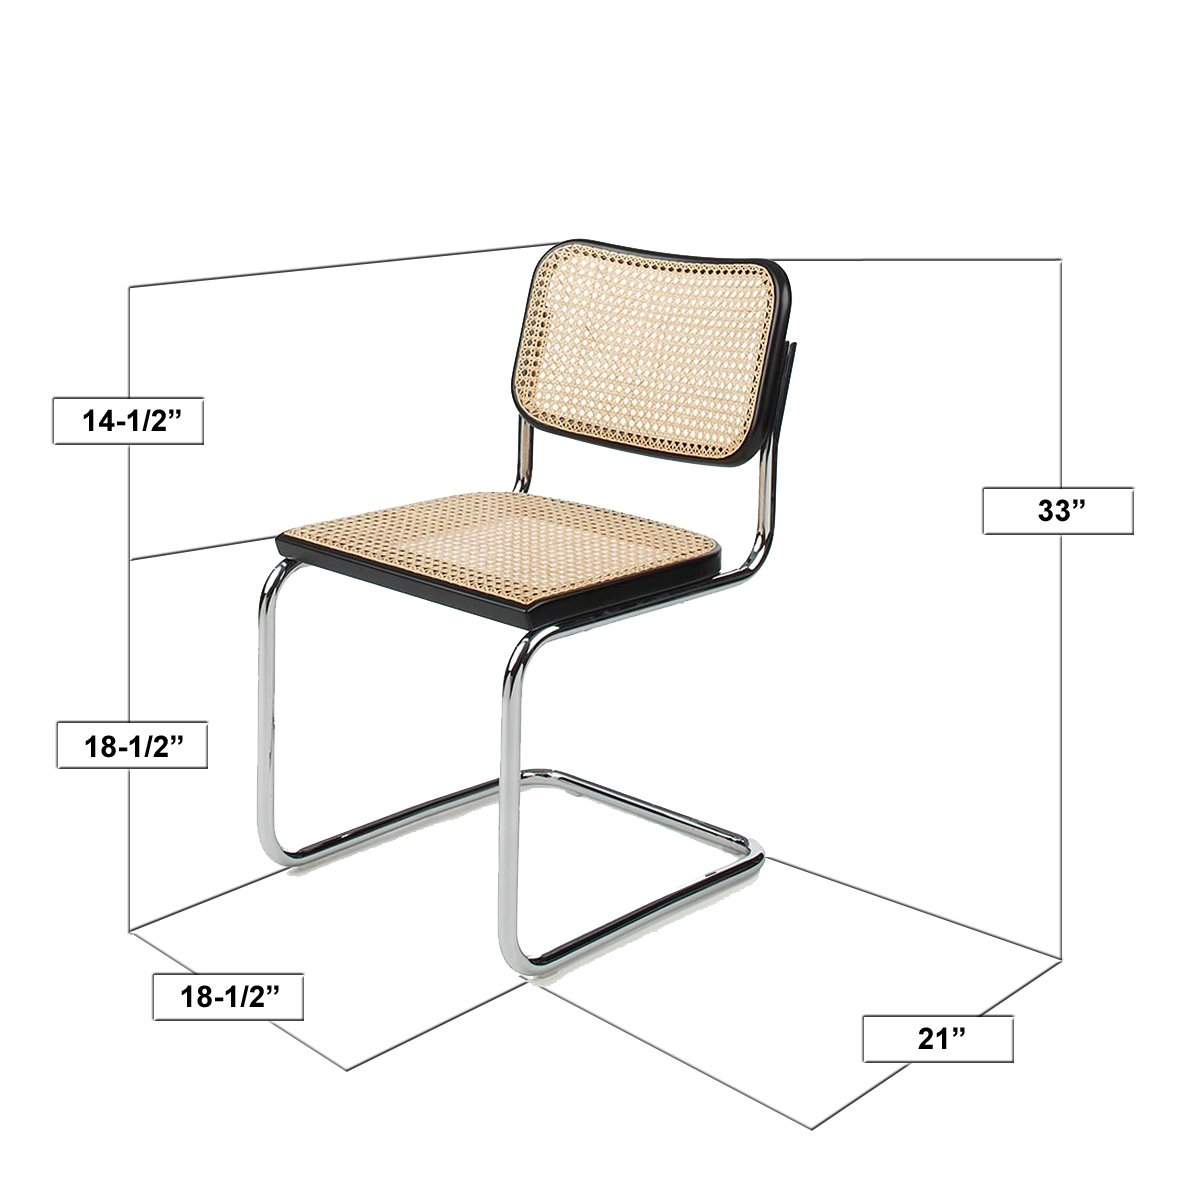 amazoncom marcel breuer cesca cane chrome side chair in natural chairs